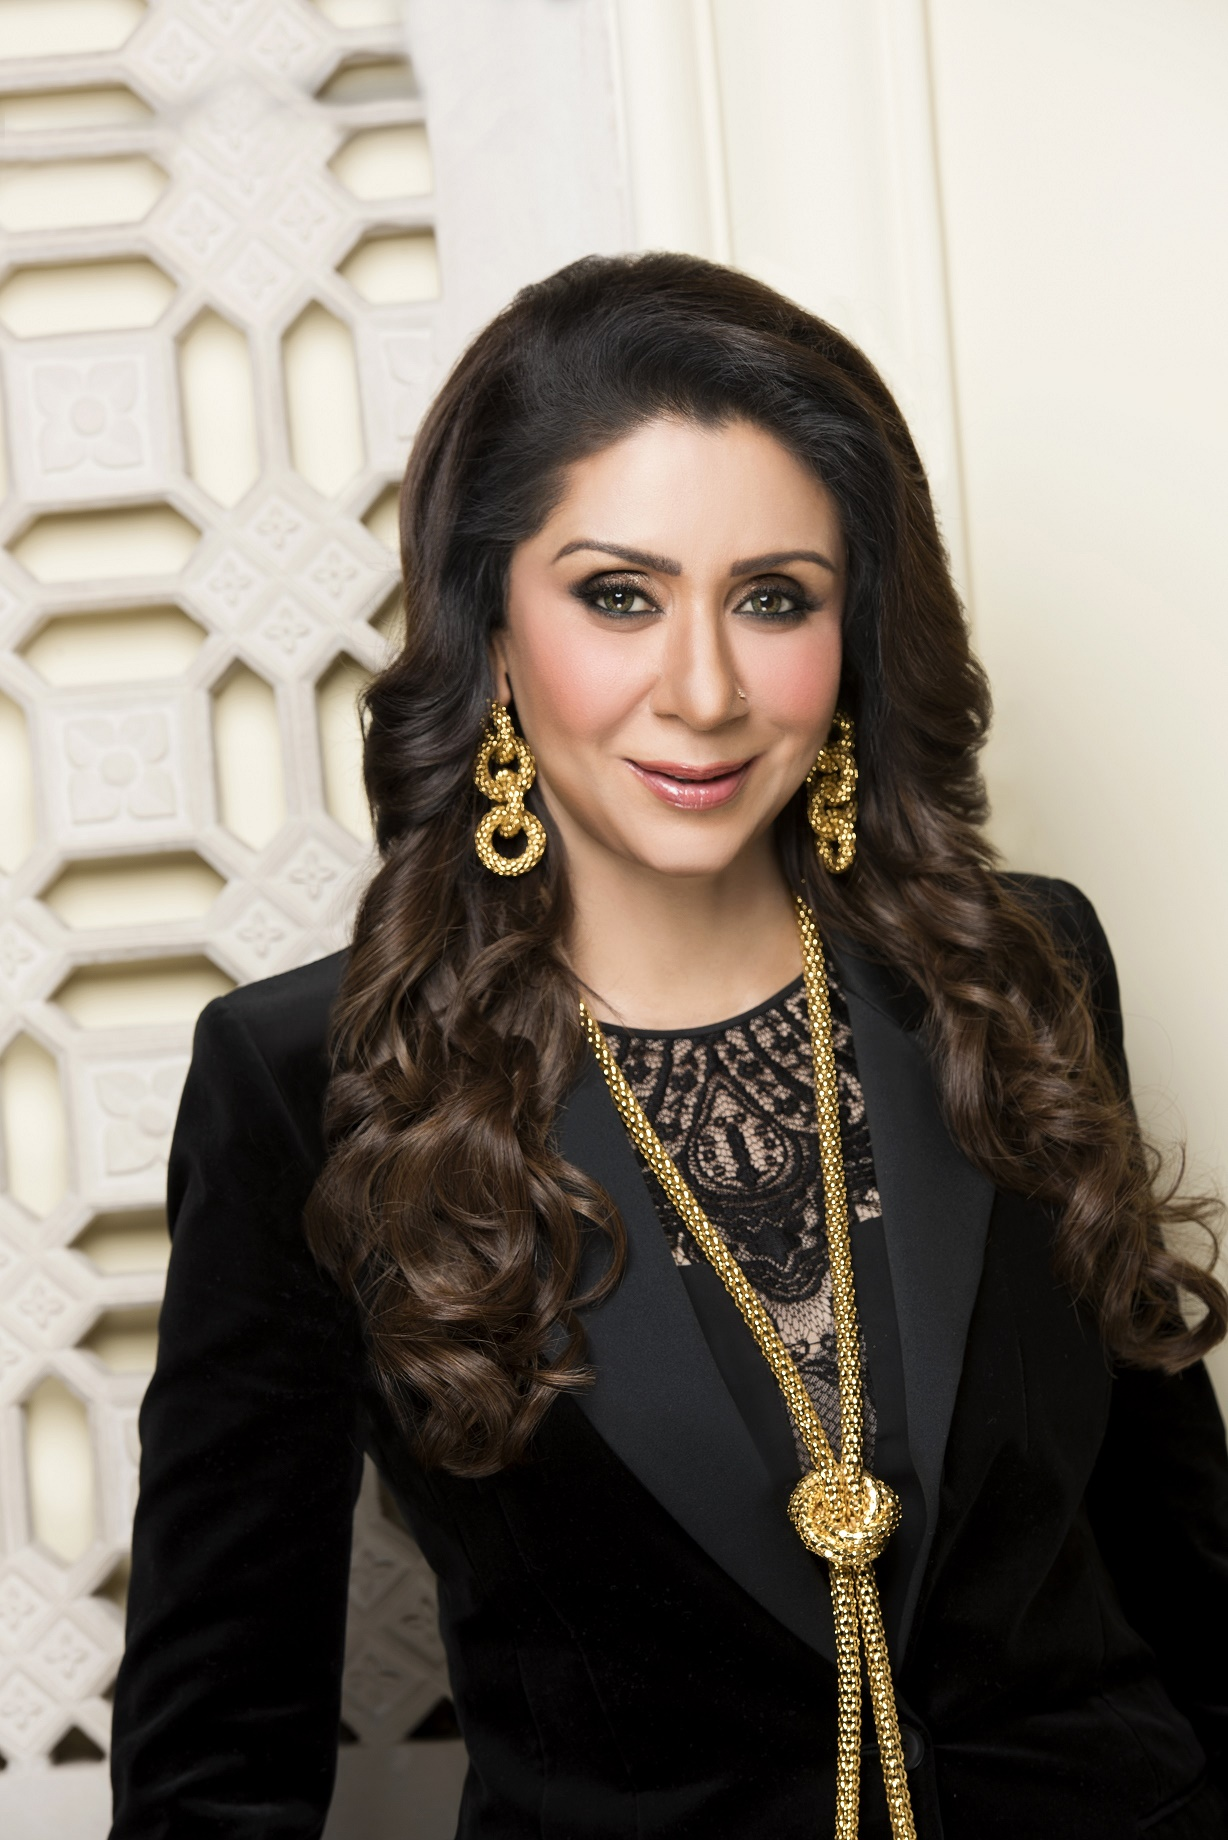 Vandana Luthra, Founder, VLCC to speak at Harvard University